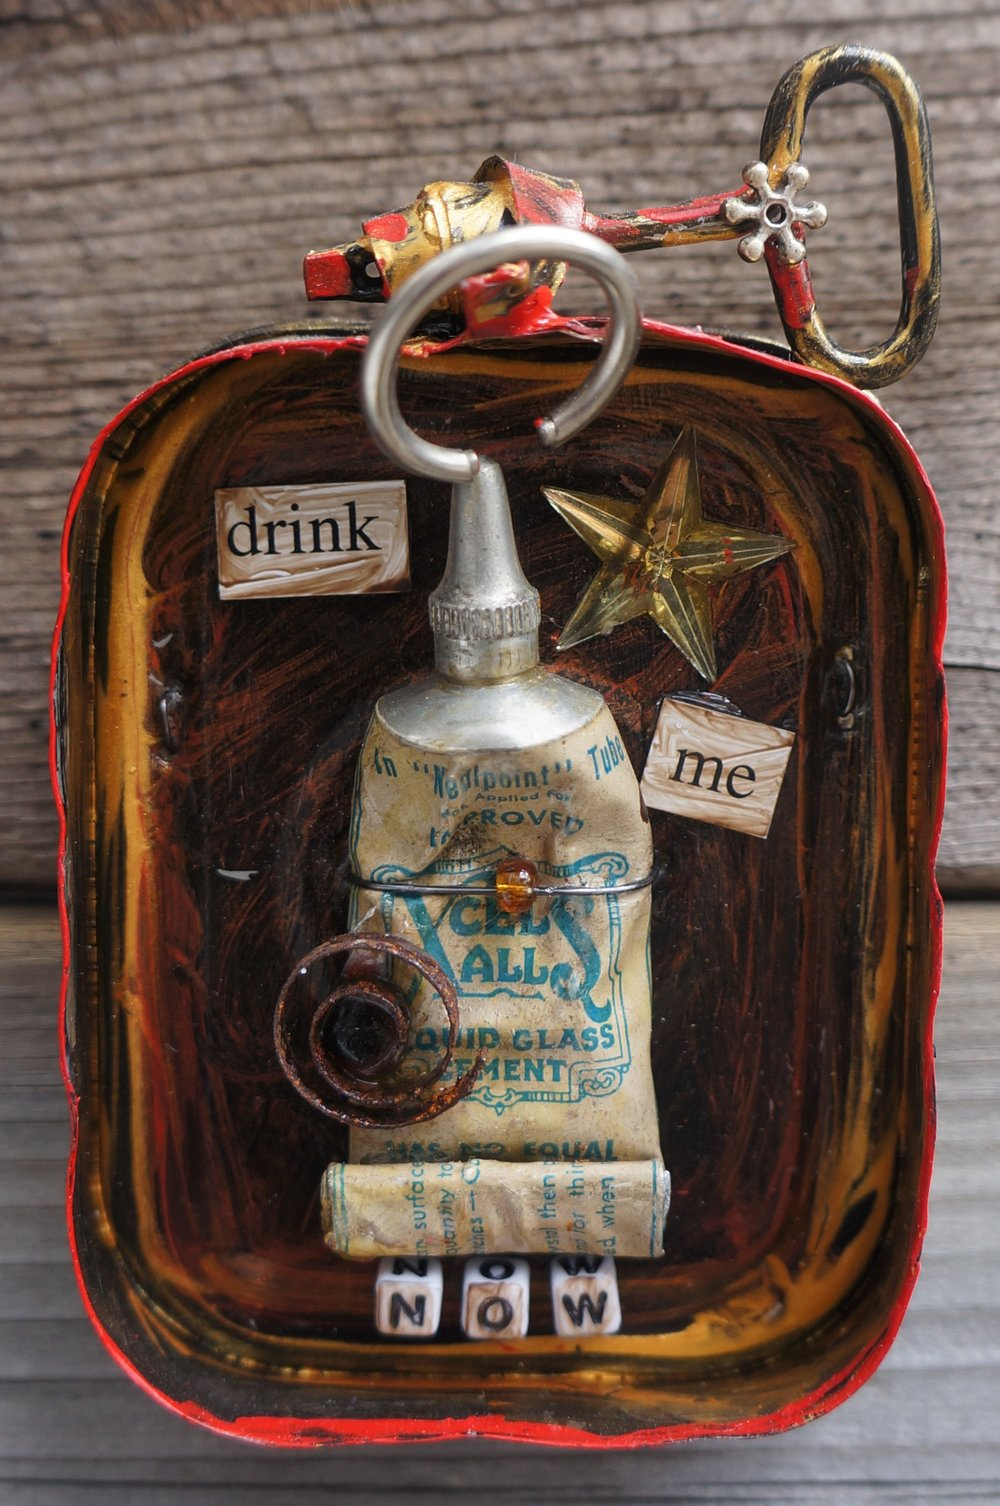 Mixed media collage in the lid of a corned beef tin. Found objects, paint, magnetic text.